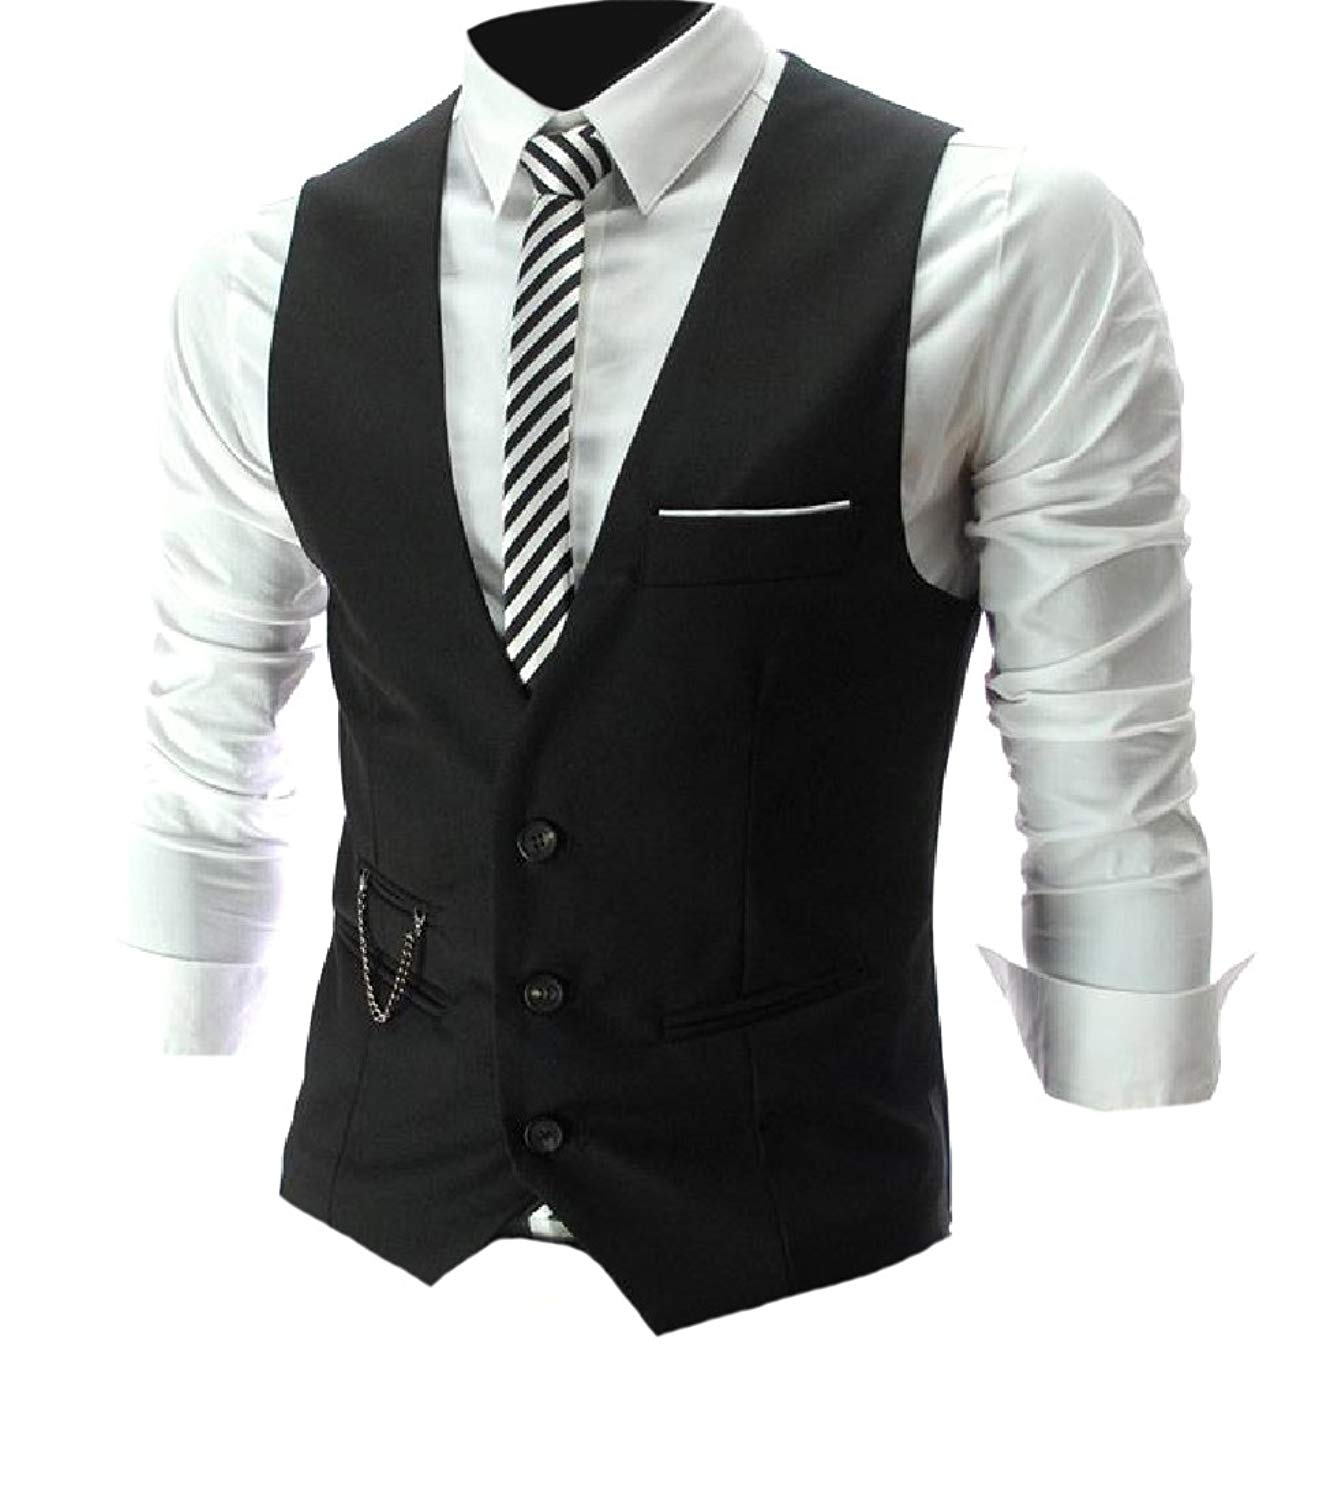 d9aab5d5acc Get Quotations · Fseason-Men No-Iron Button Front Slim Cut Suit Vest with  Metal Chain